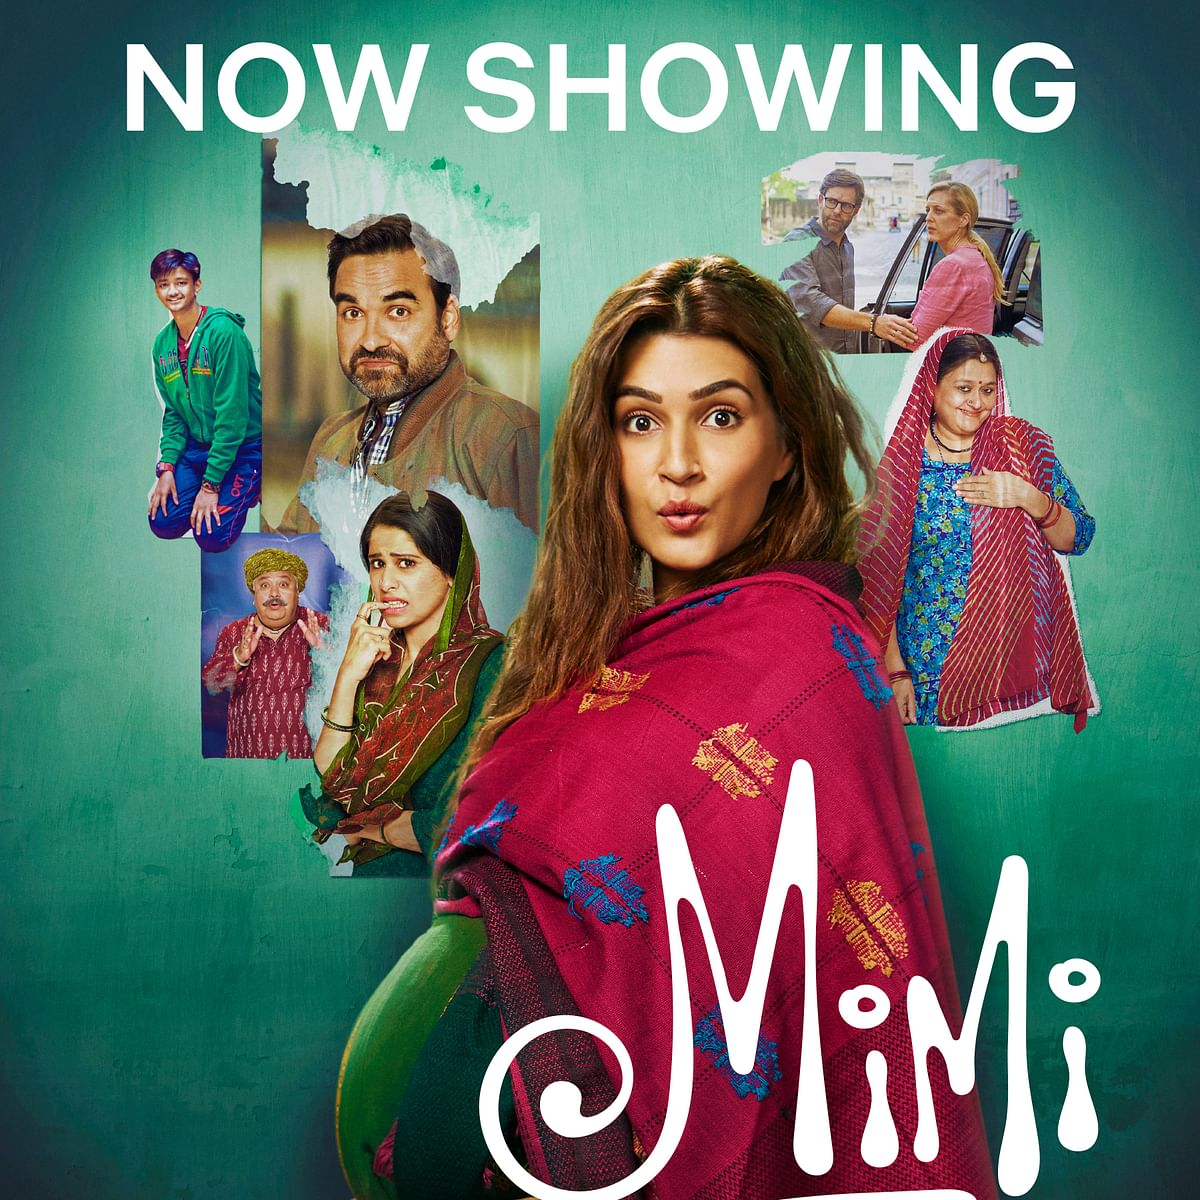 'Went into labour early': Kriti Sanon's 'Mimi' releases on Netflix after being leaked online four days before its official release